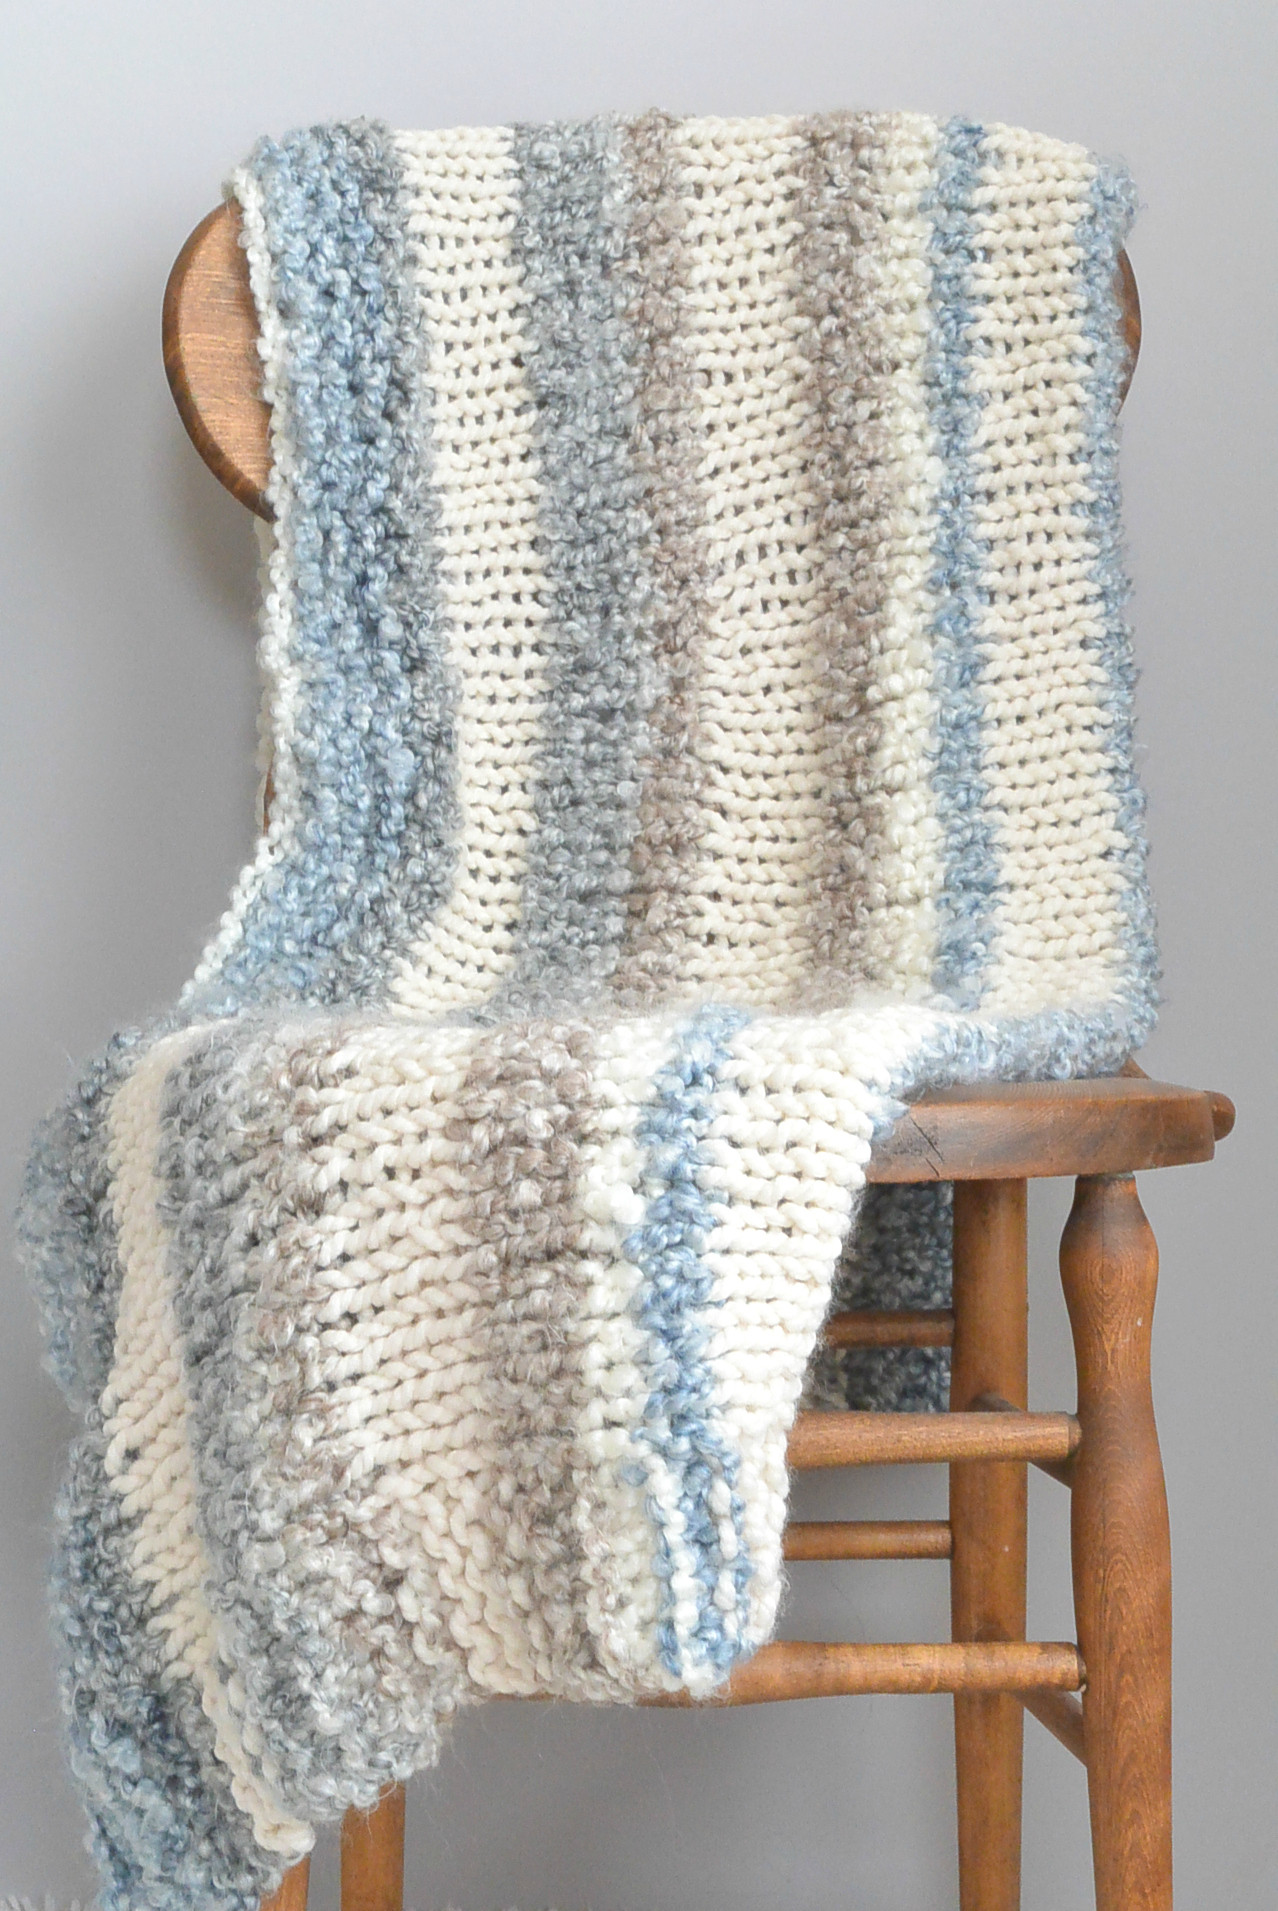 Knitted Throw Inspirational Cuddly Quick Knit Throw Blanket Pattern – Mama In A Stitch Of Wonderful 48 Images Knitted Throw